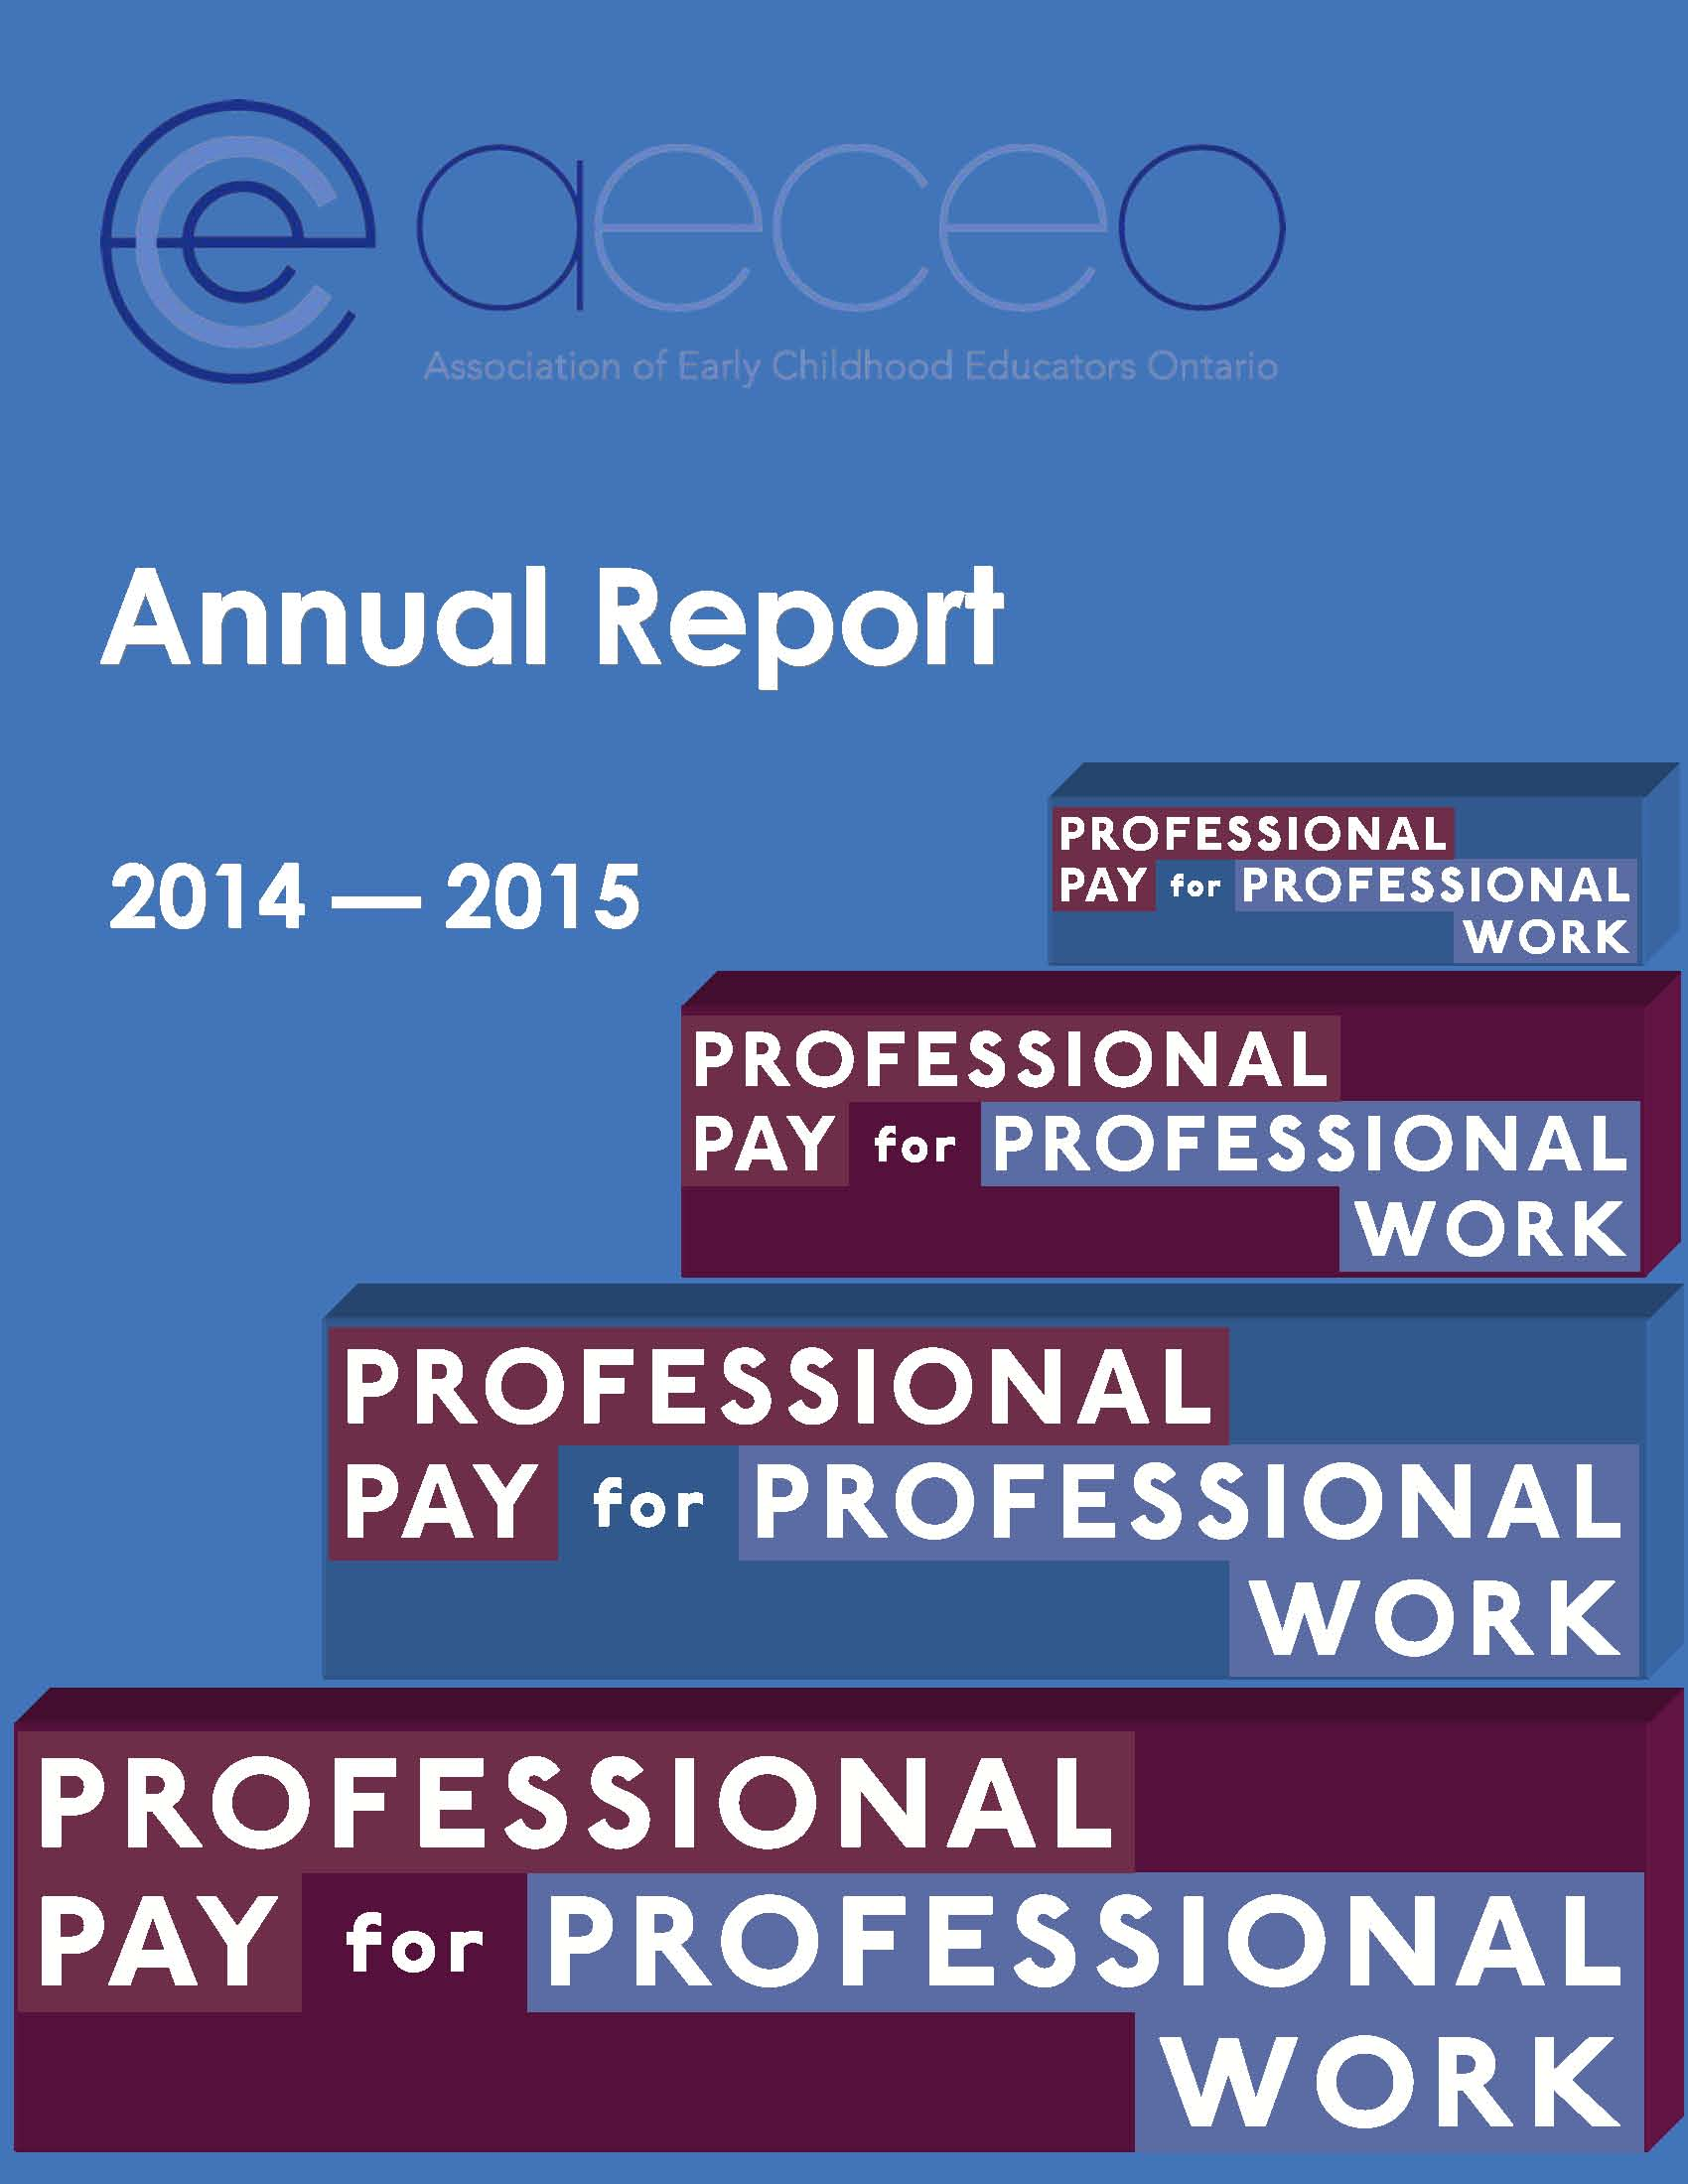 AECEO_Annual_Report_2014-2015_1.jpg